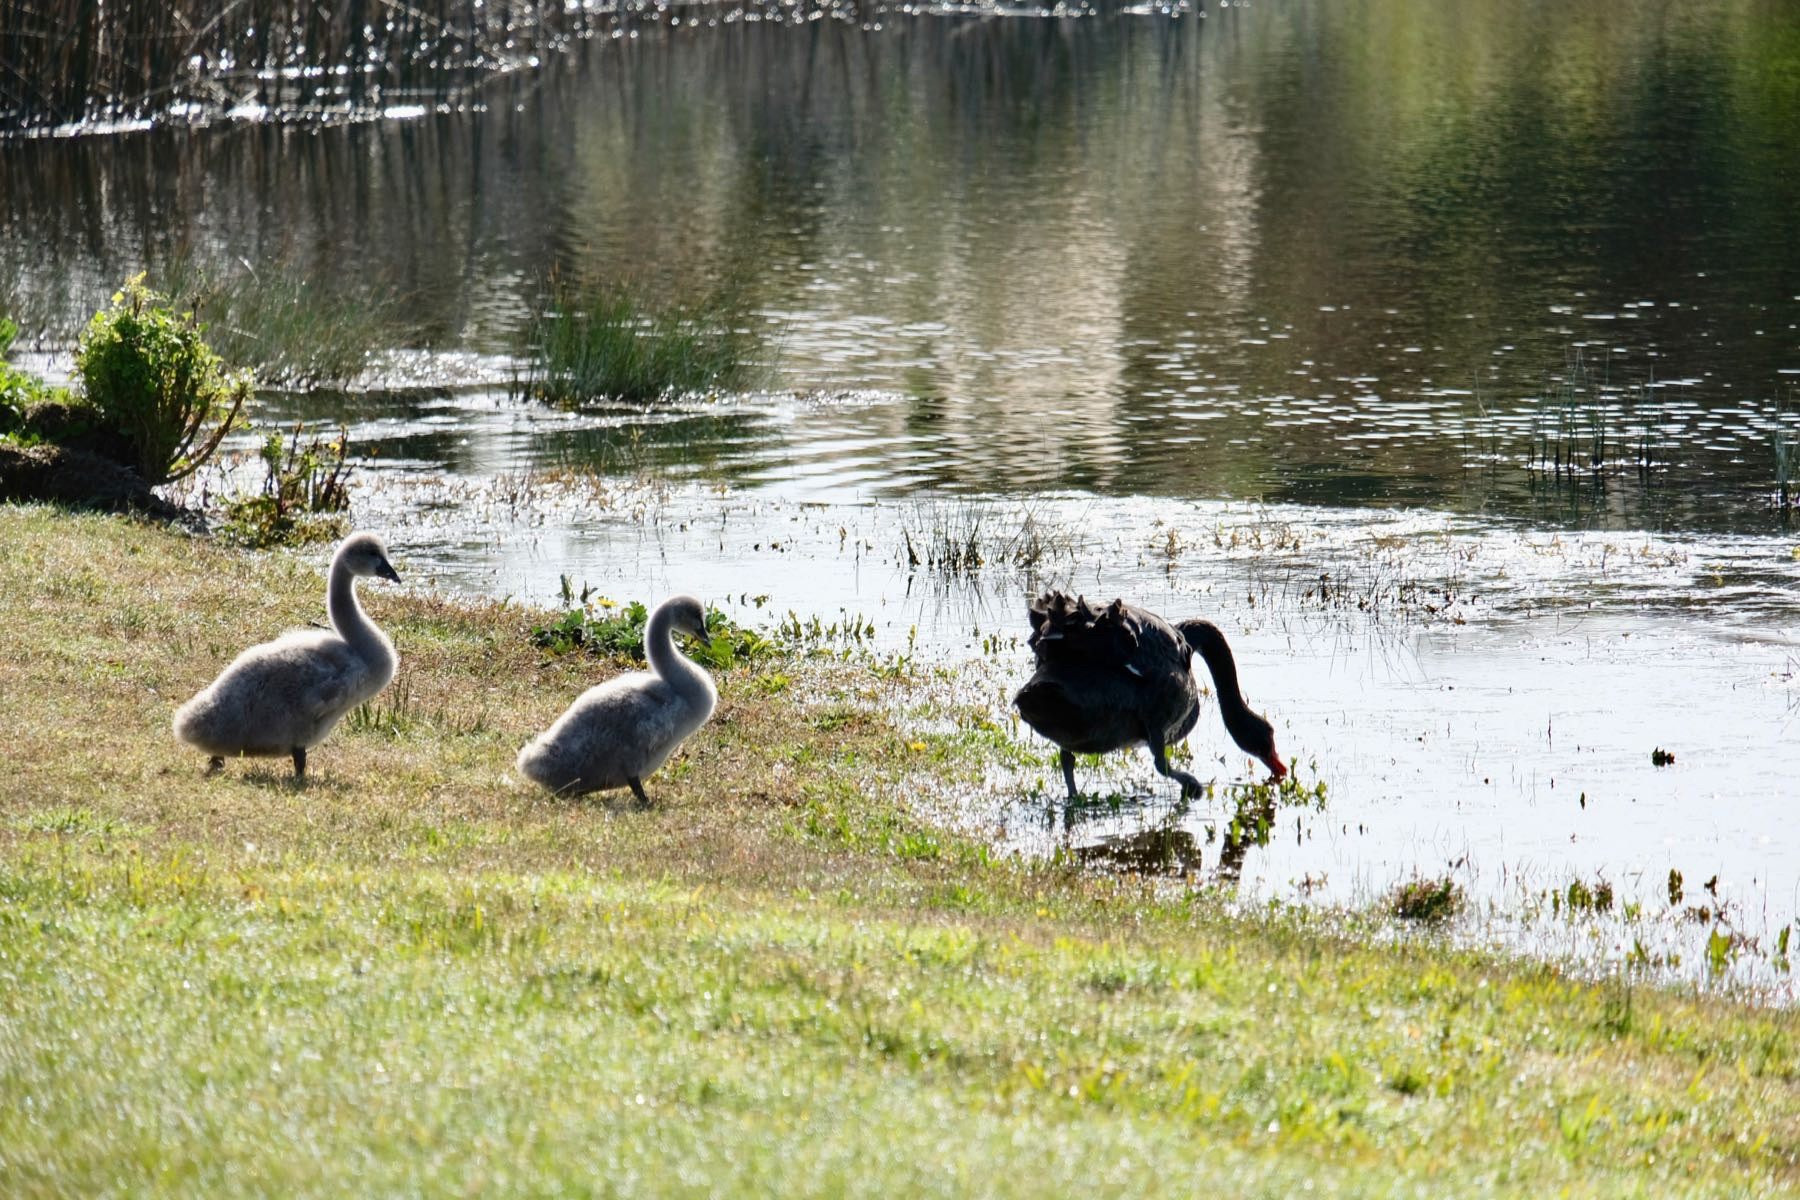 Black swan and two grey cygnets, about to enter a small lake.